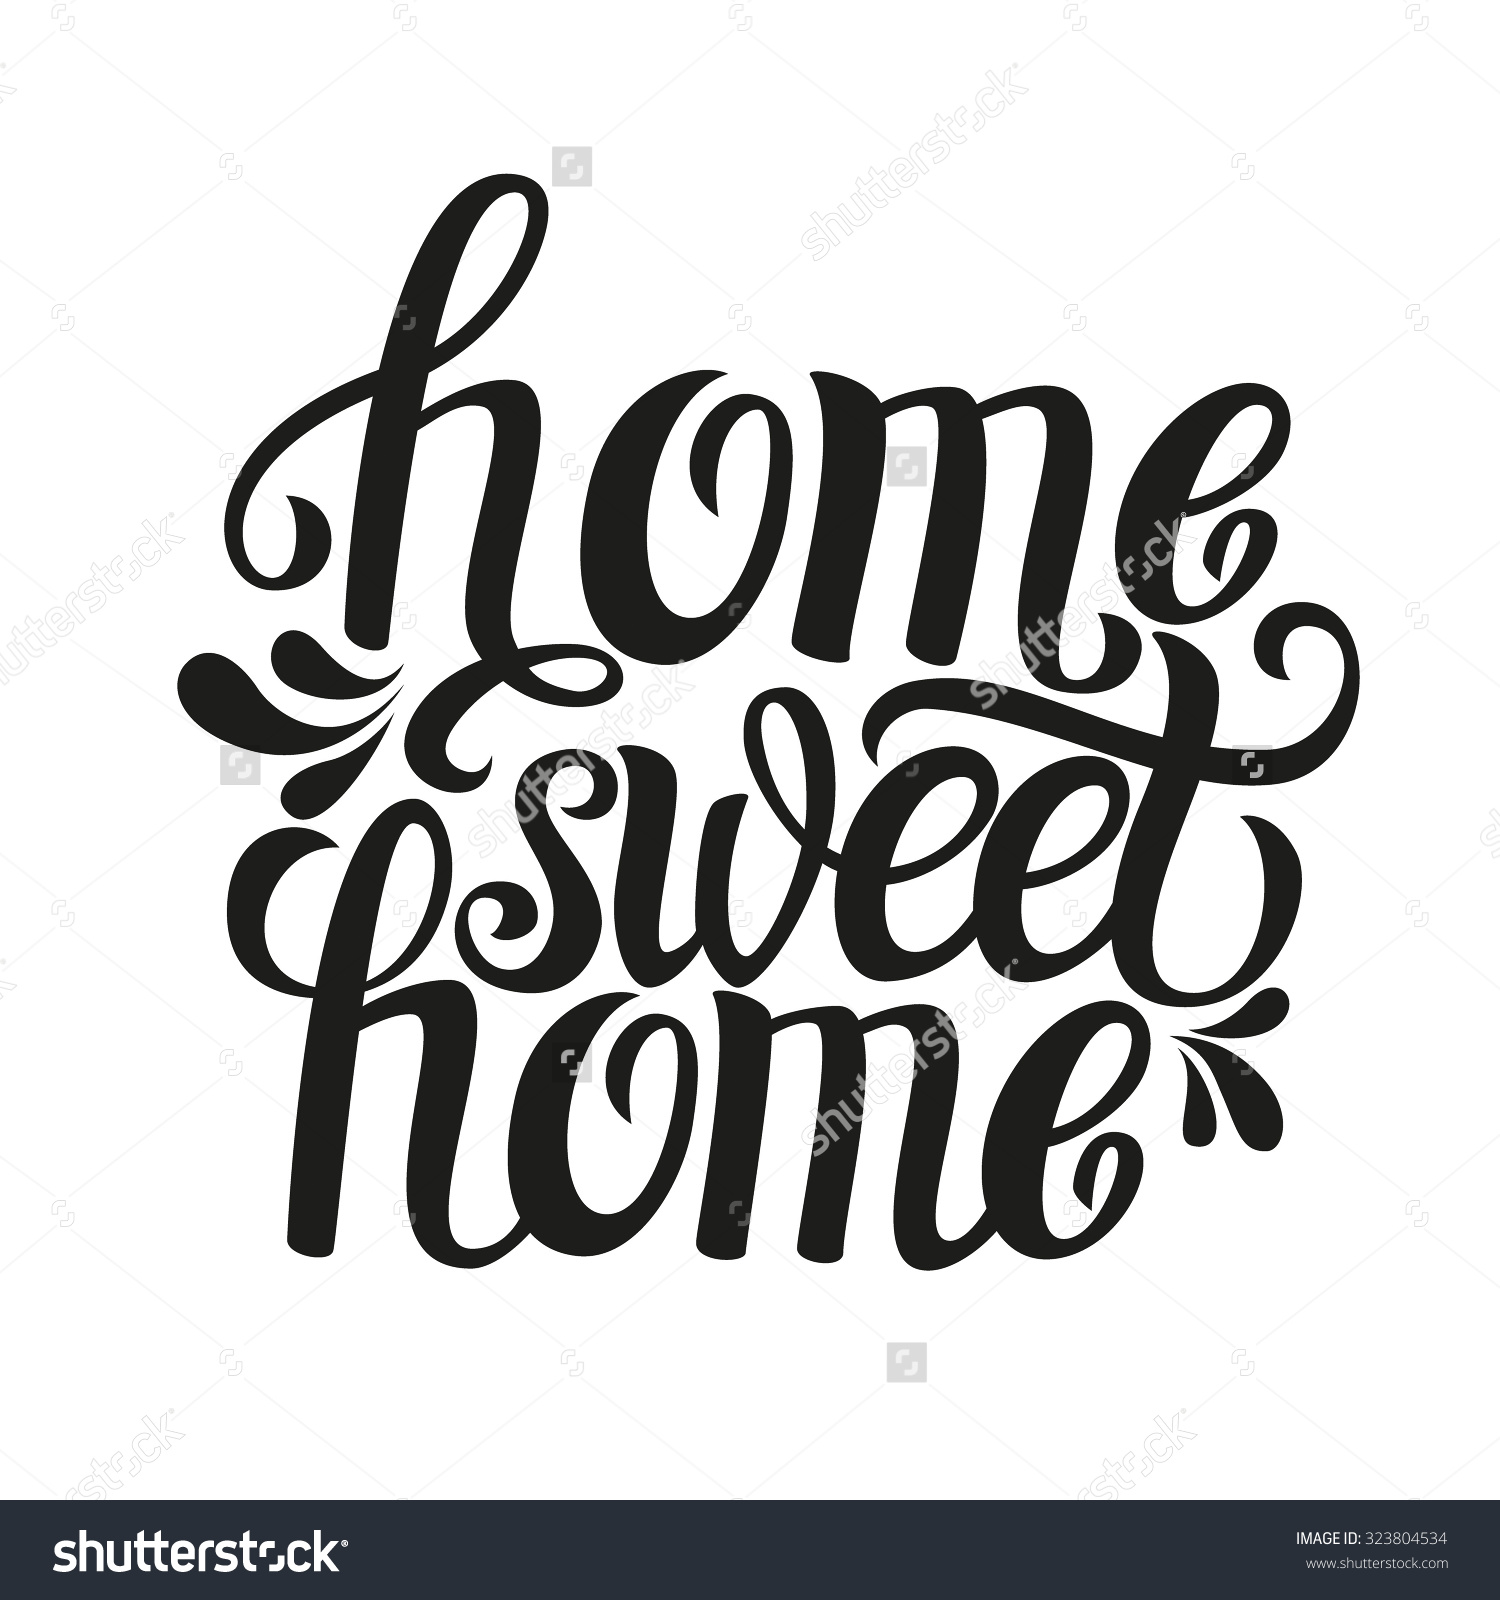 Home Sweet Home High Quality Background on Wallpapers Vista